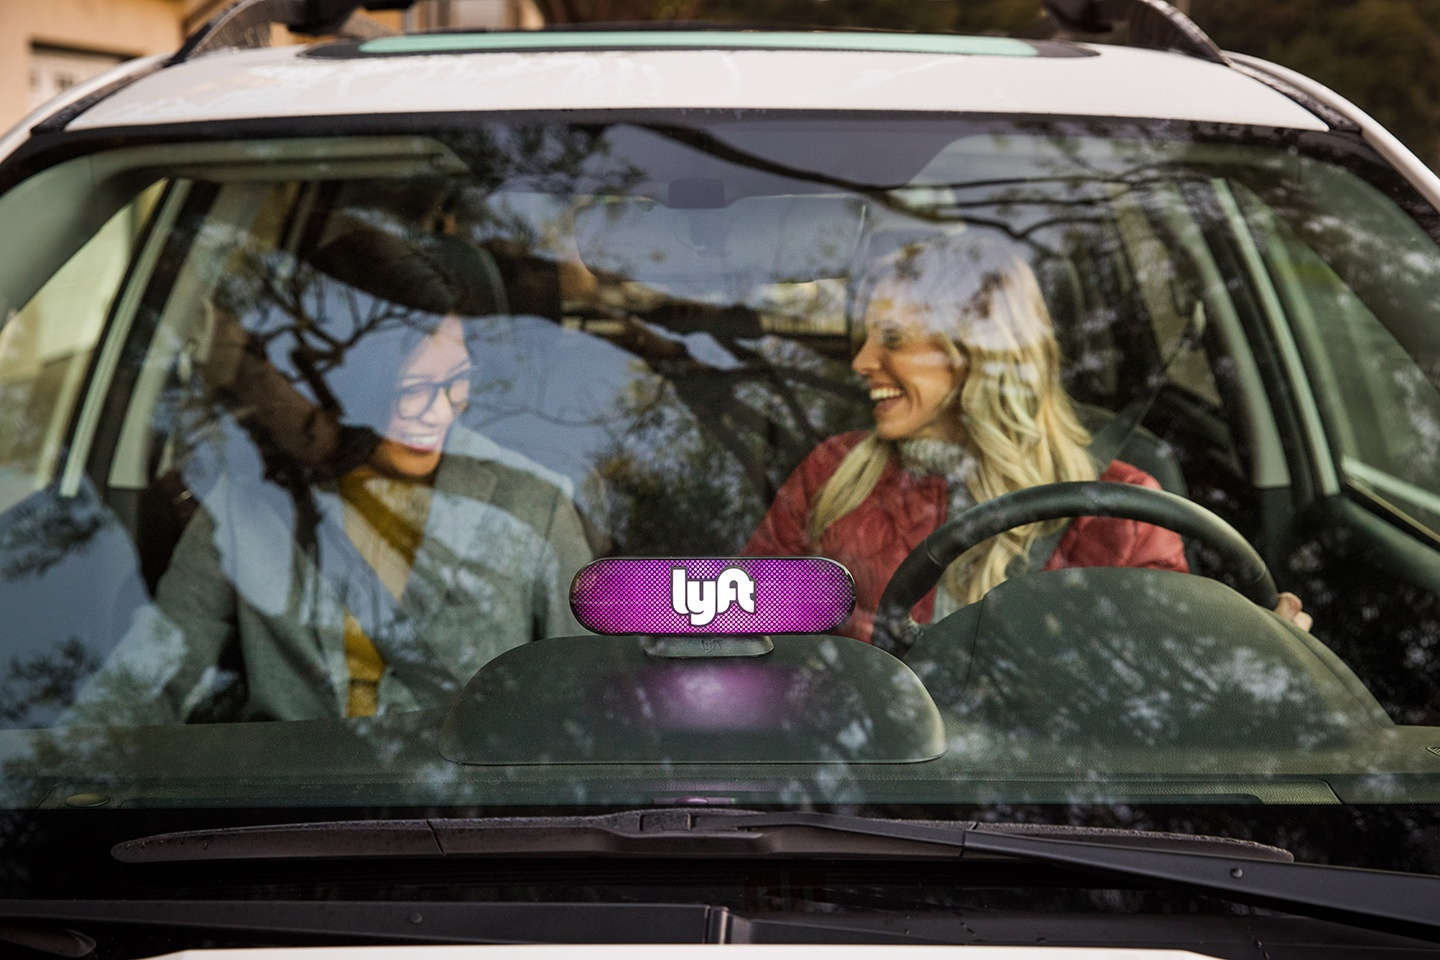 Lyft carpool vehicle with two women